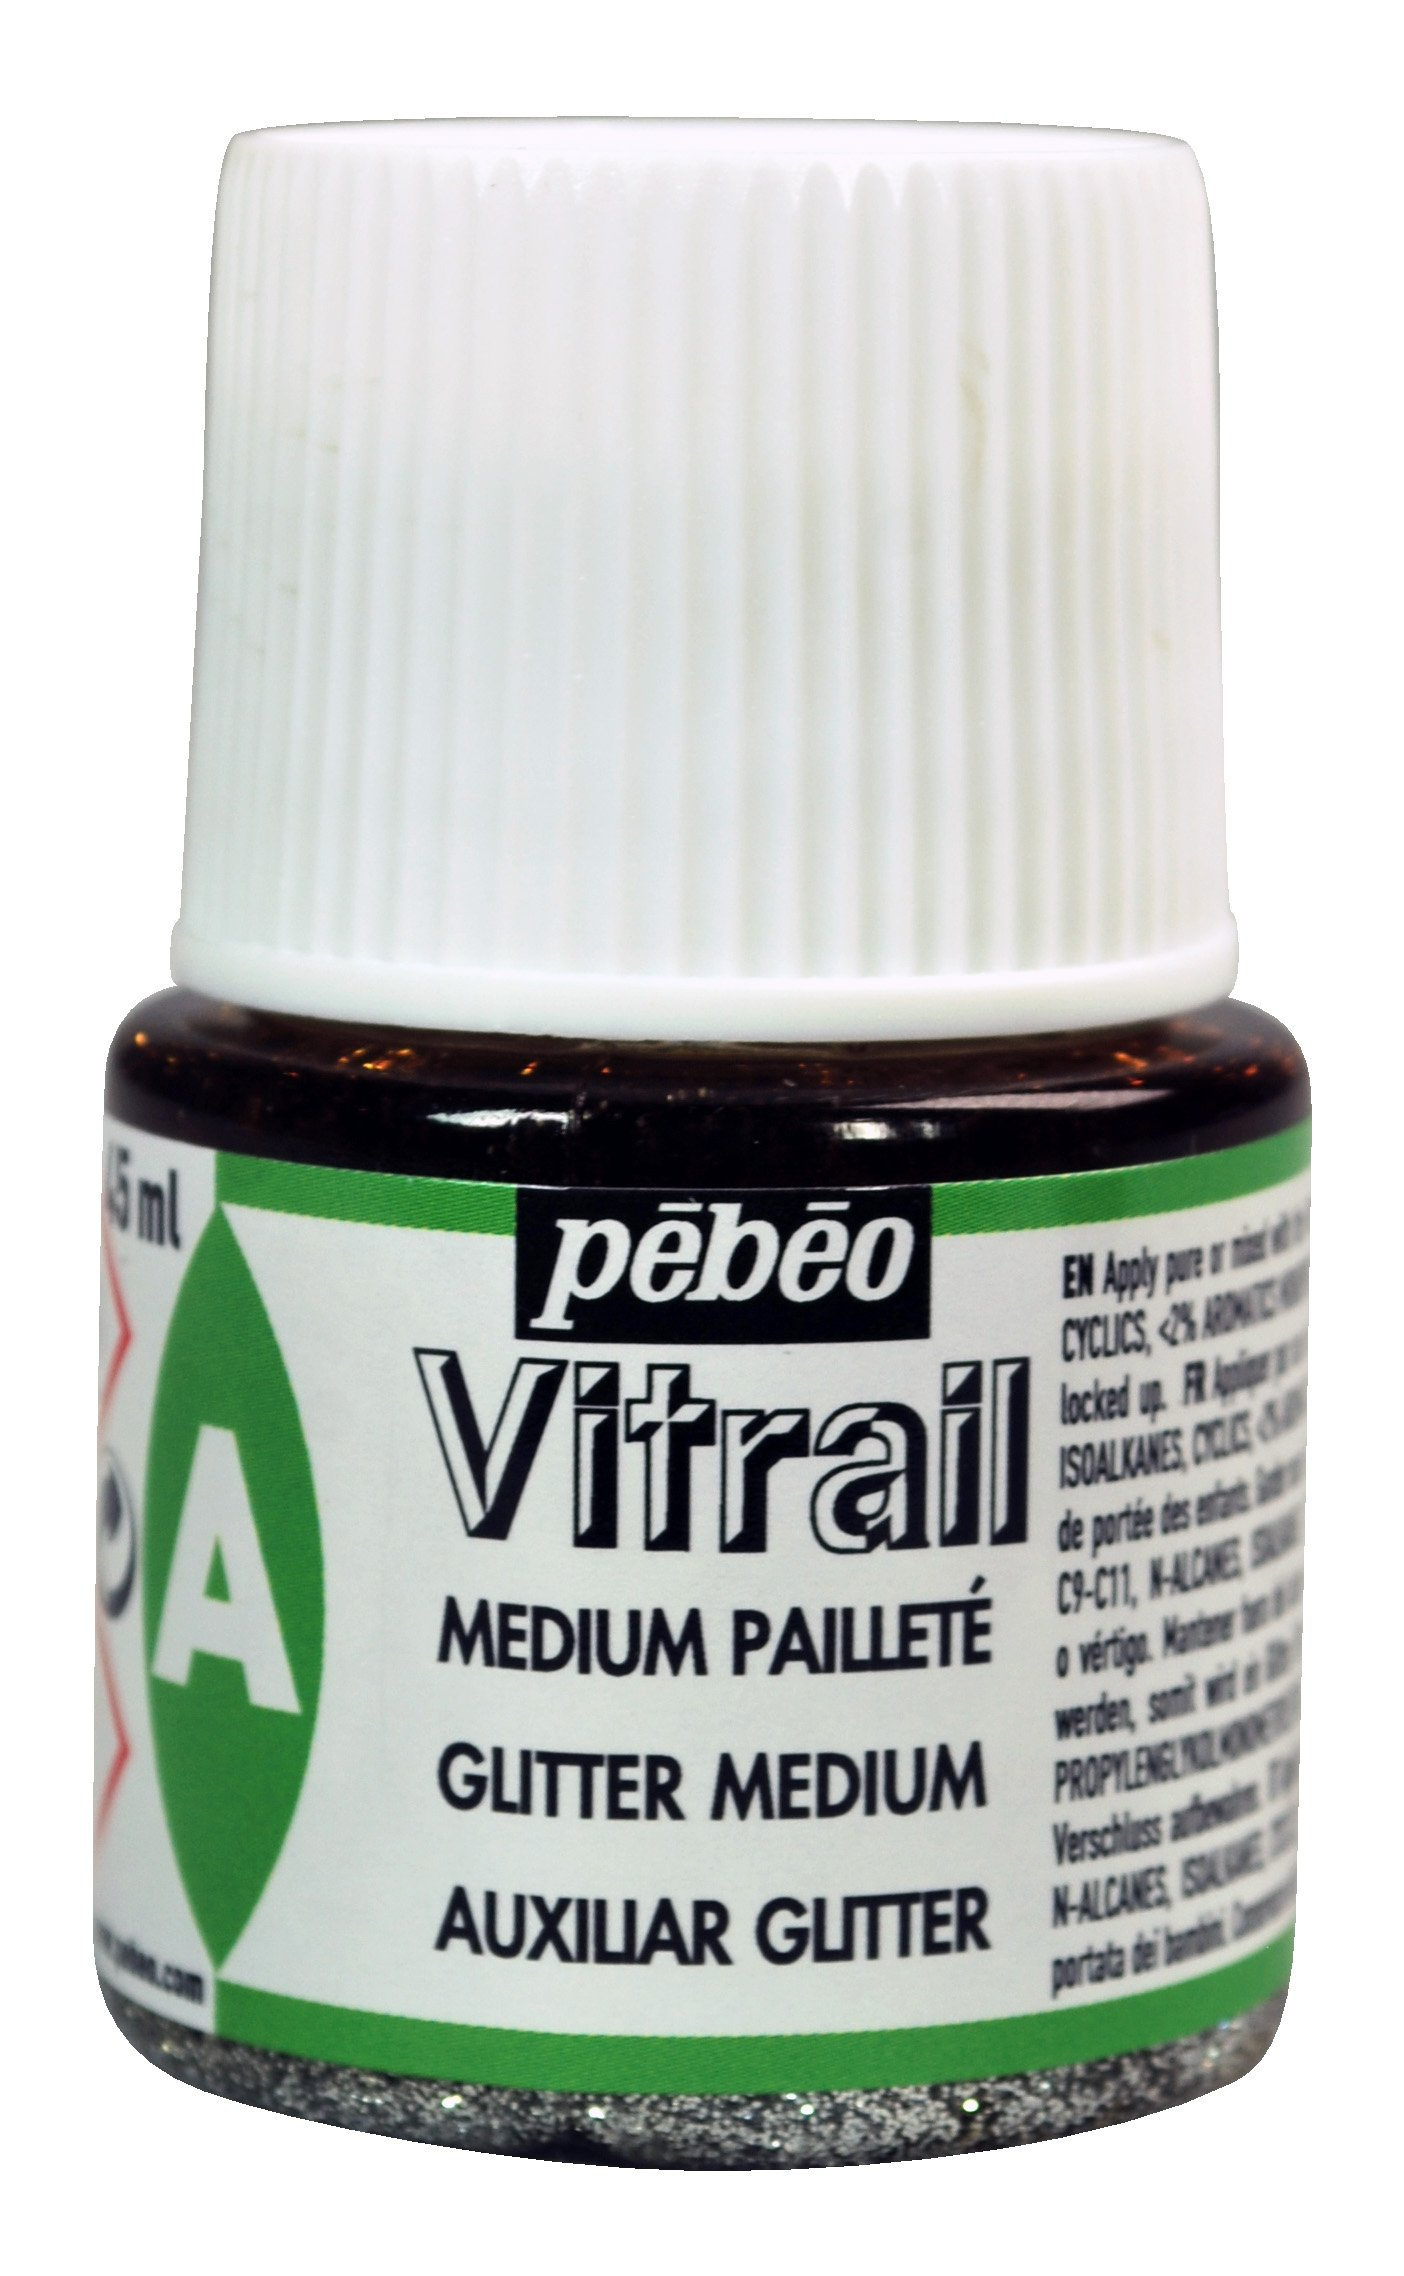 Pebeo Vitrail, Stained Glass Effect Paint Auxiliaries, 45 ml Bottle - Glitter Medium